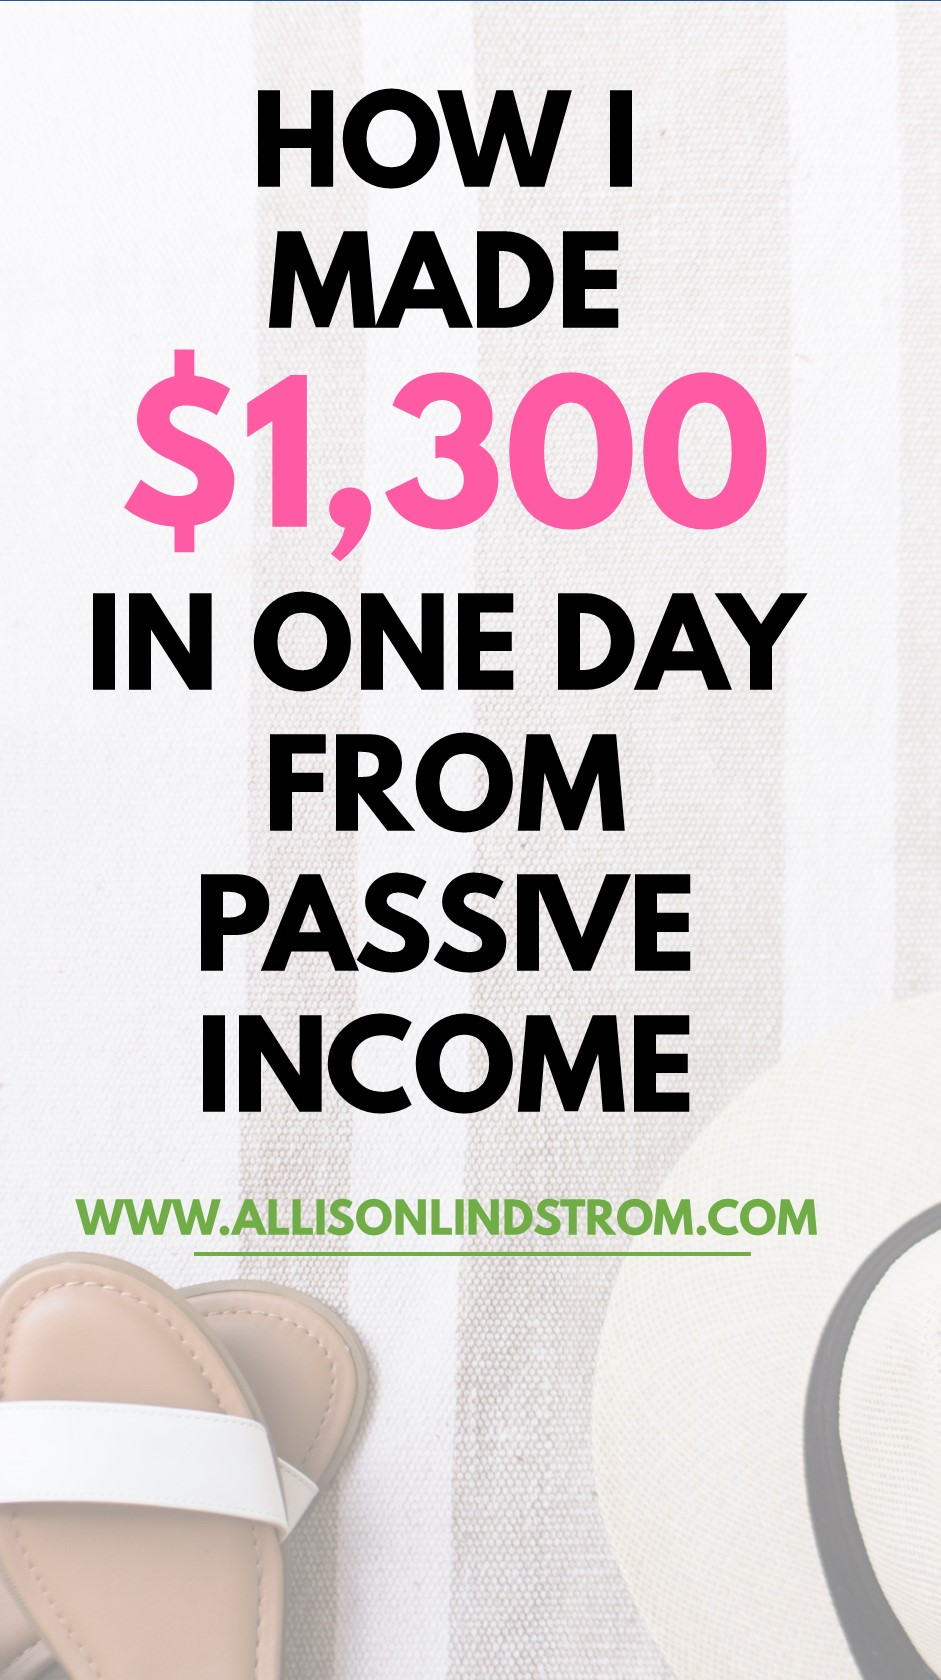 HOW I EARNED $1,300 IN ONE DAY ○ PASSIVE INCOME ○ MAKE MONEY ...